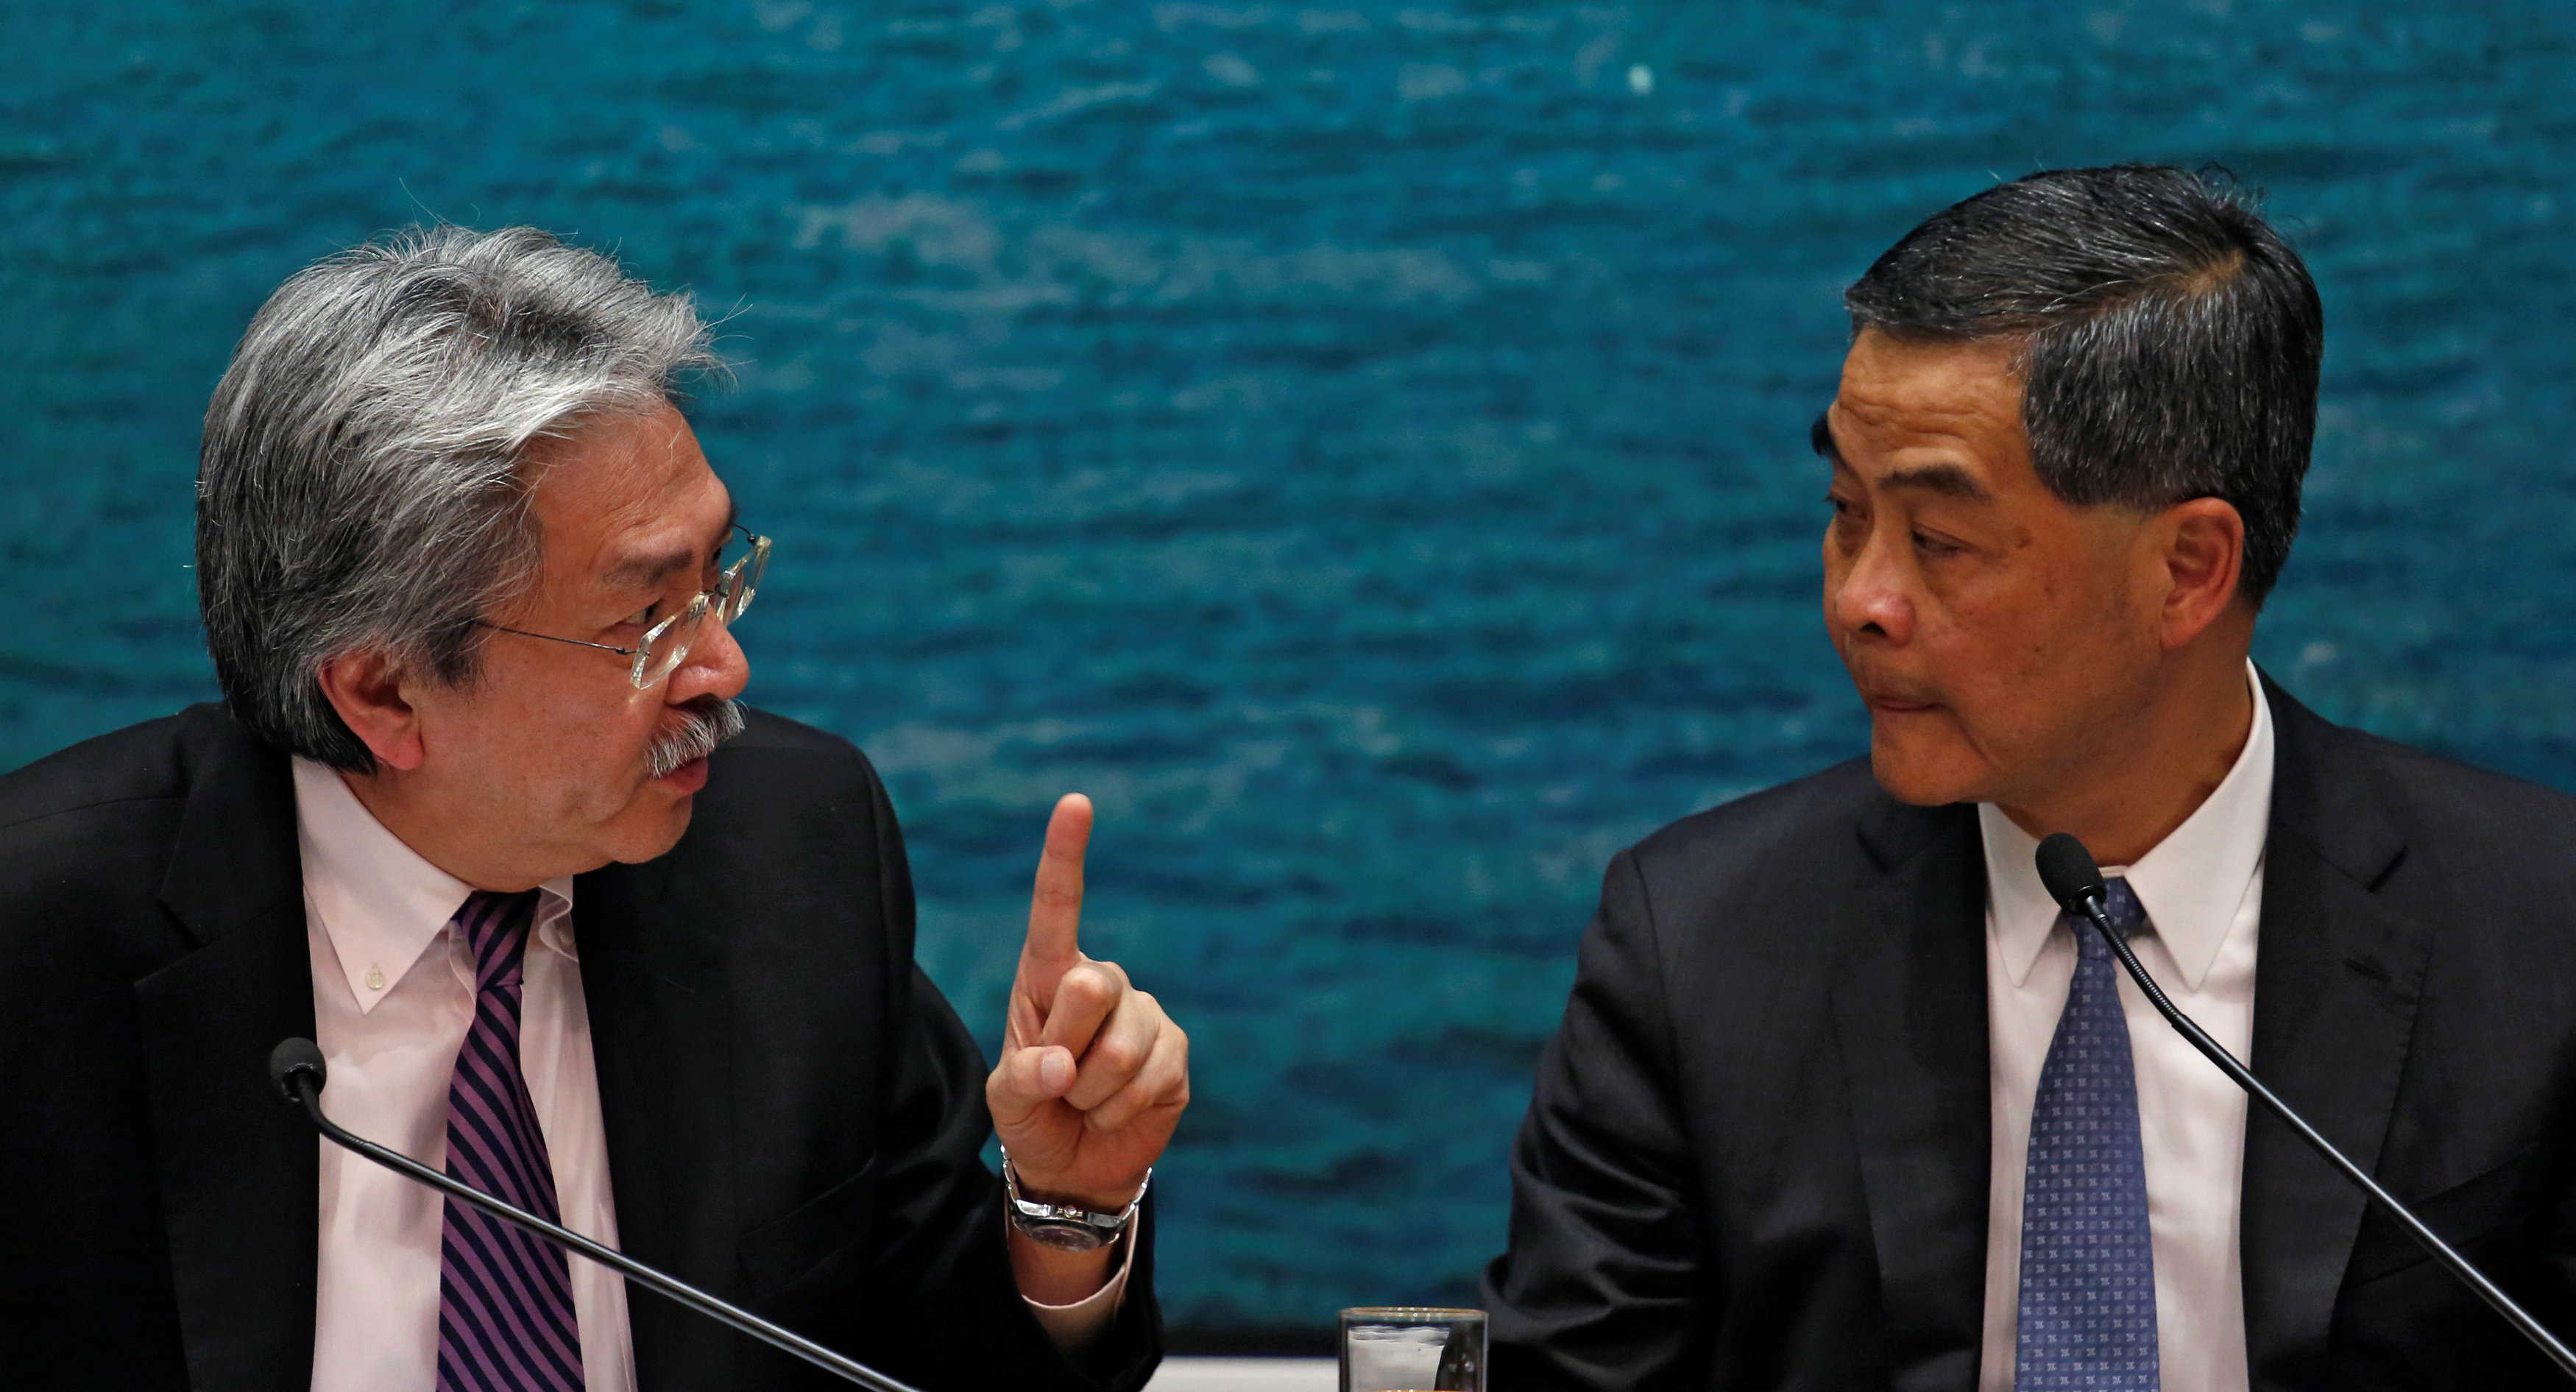 Hong Kong Chief Executive Leung Chun-ying listens to Financial Secretary John Tsang during a news conference in Hong Kong, China November 4, 2016. REUTERS/Bobby Yip